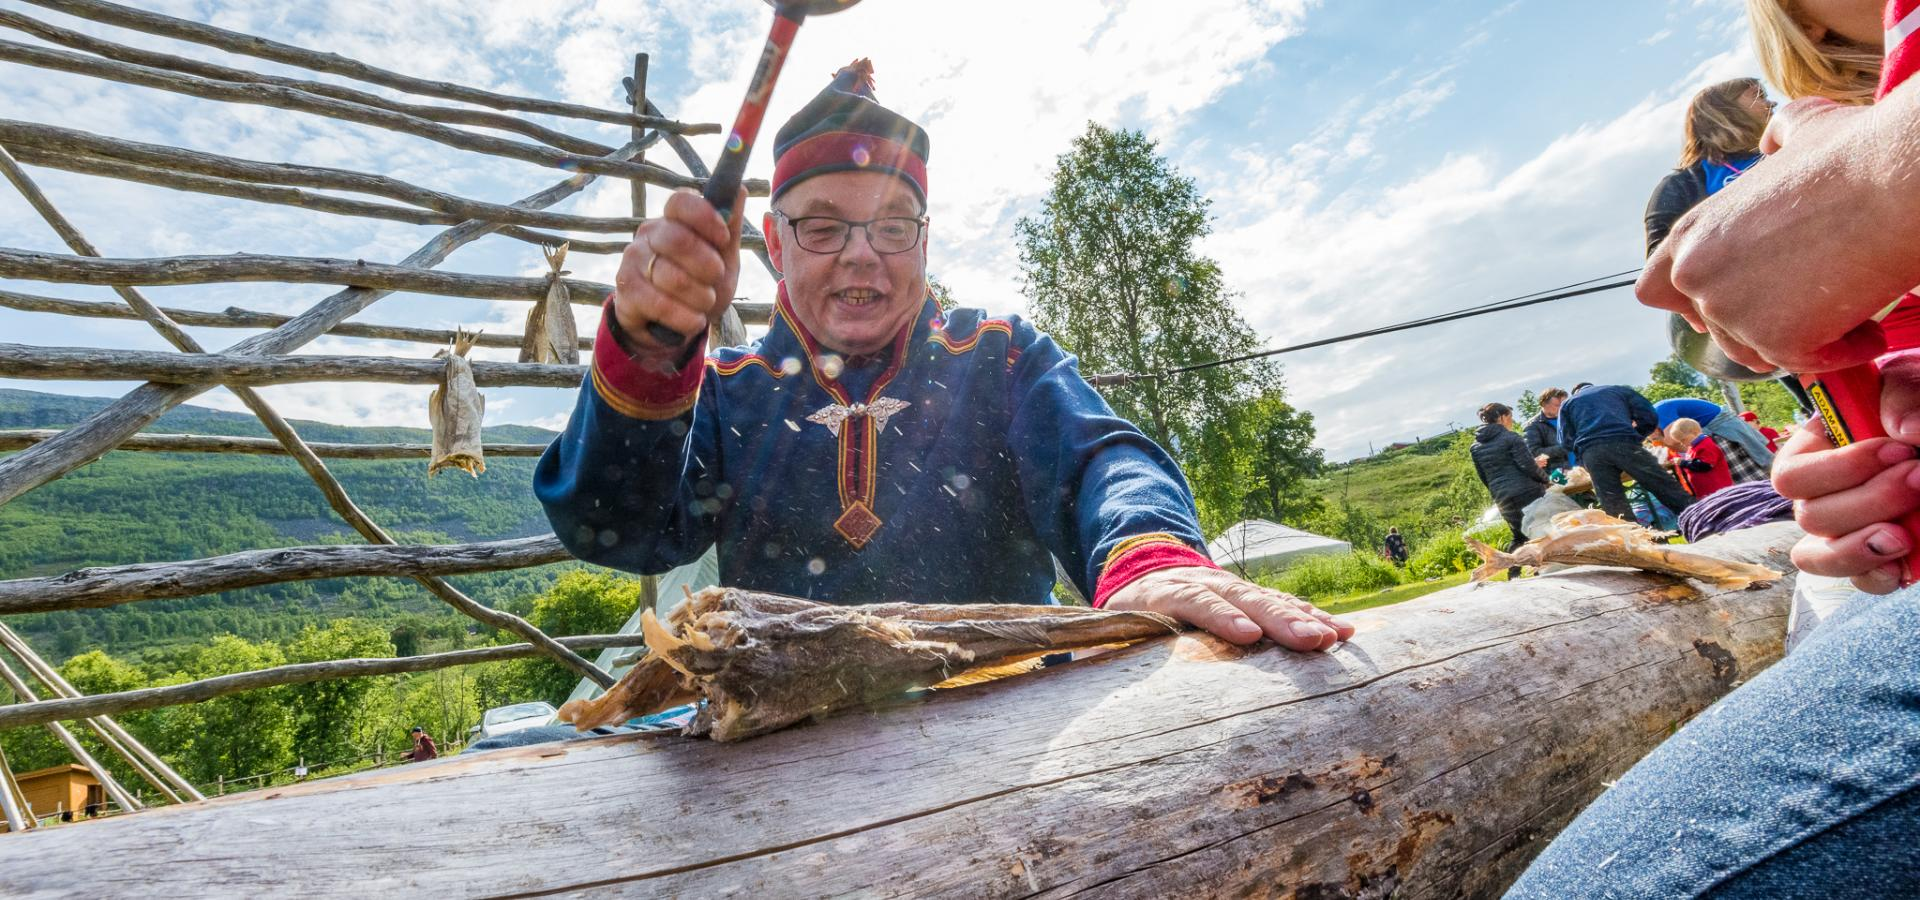 Hammering dried fish, wearing a sami suit